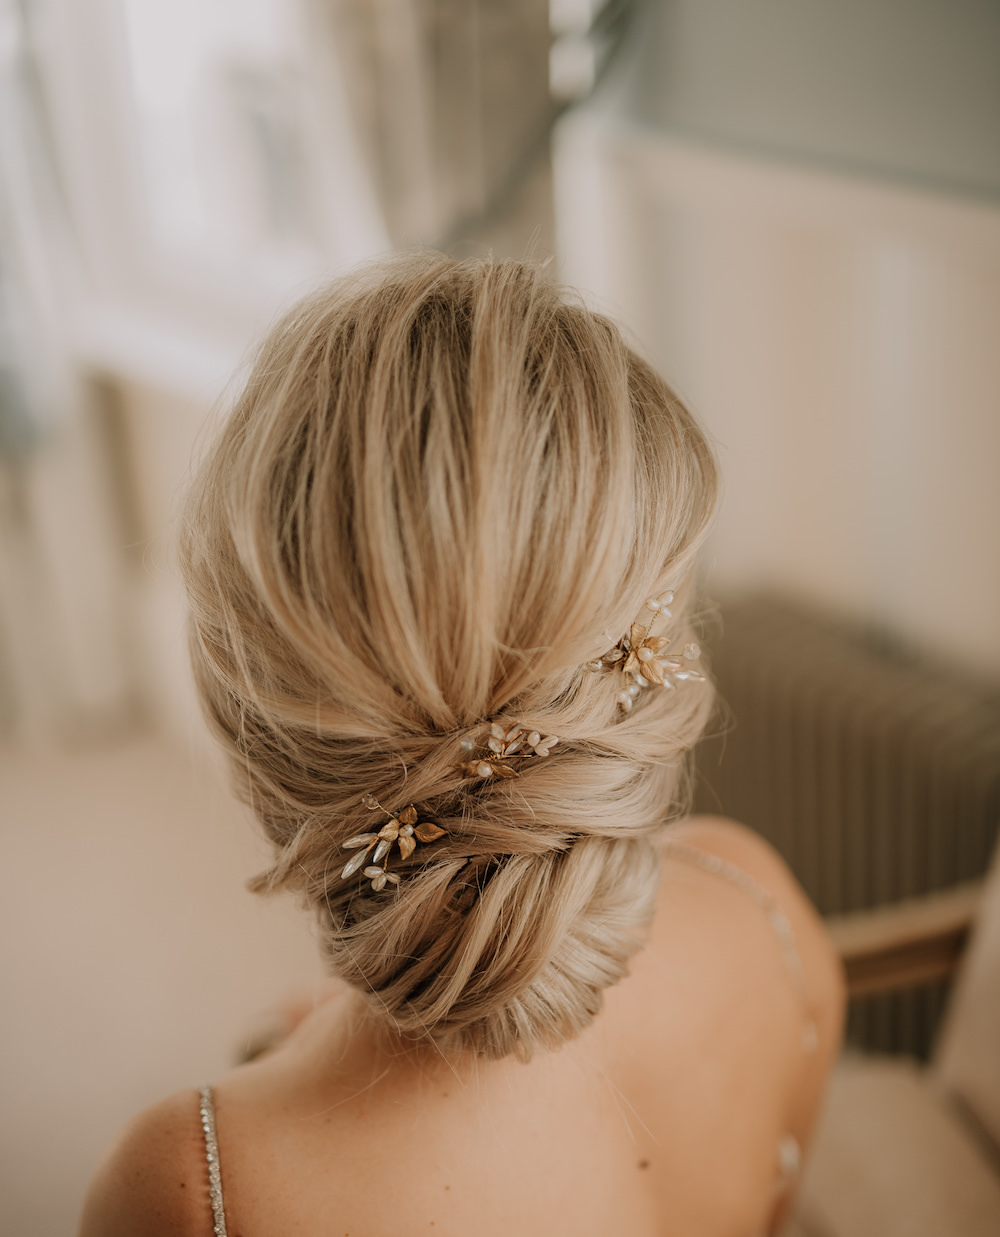 Bride Bridal Hair Style Up Do France Elopement Ideas Pierra G Photography